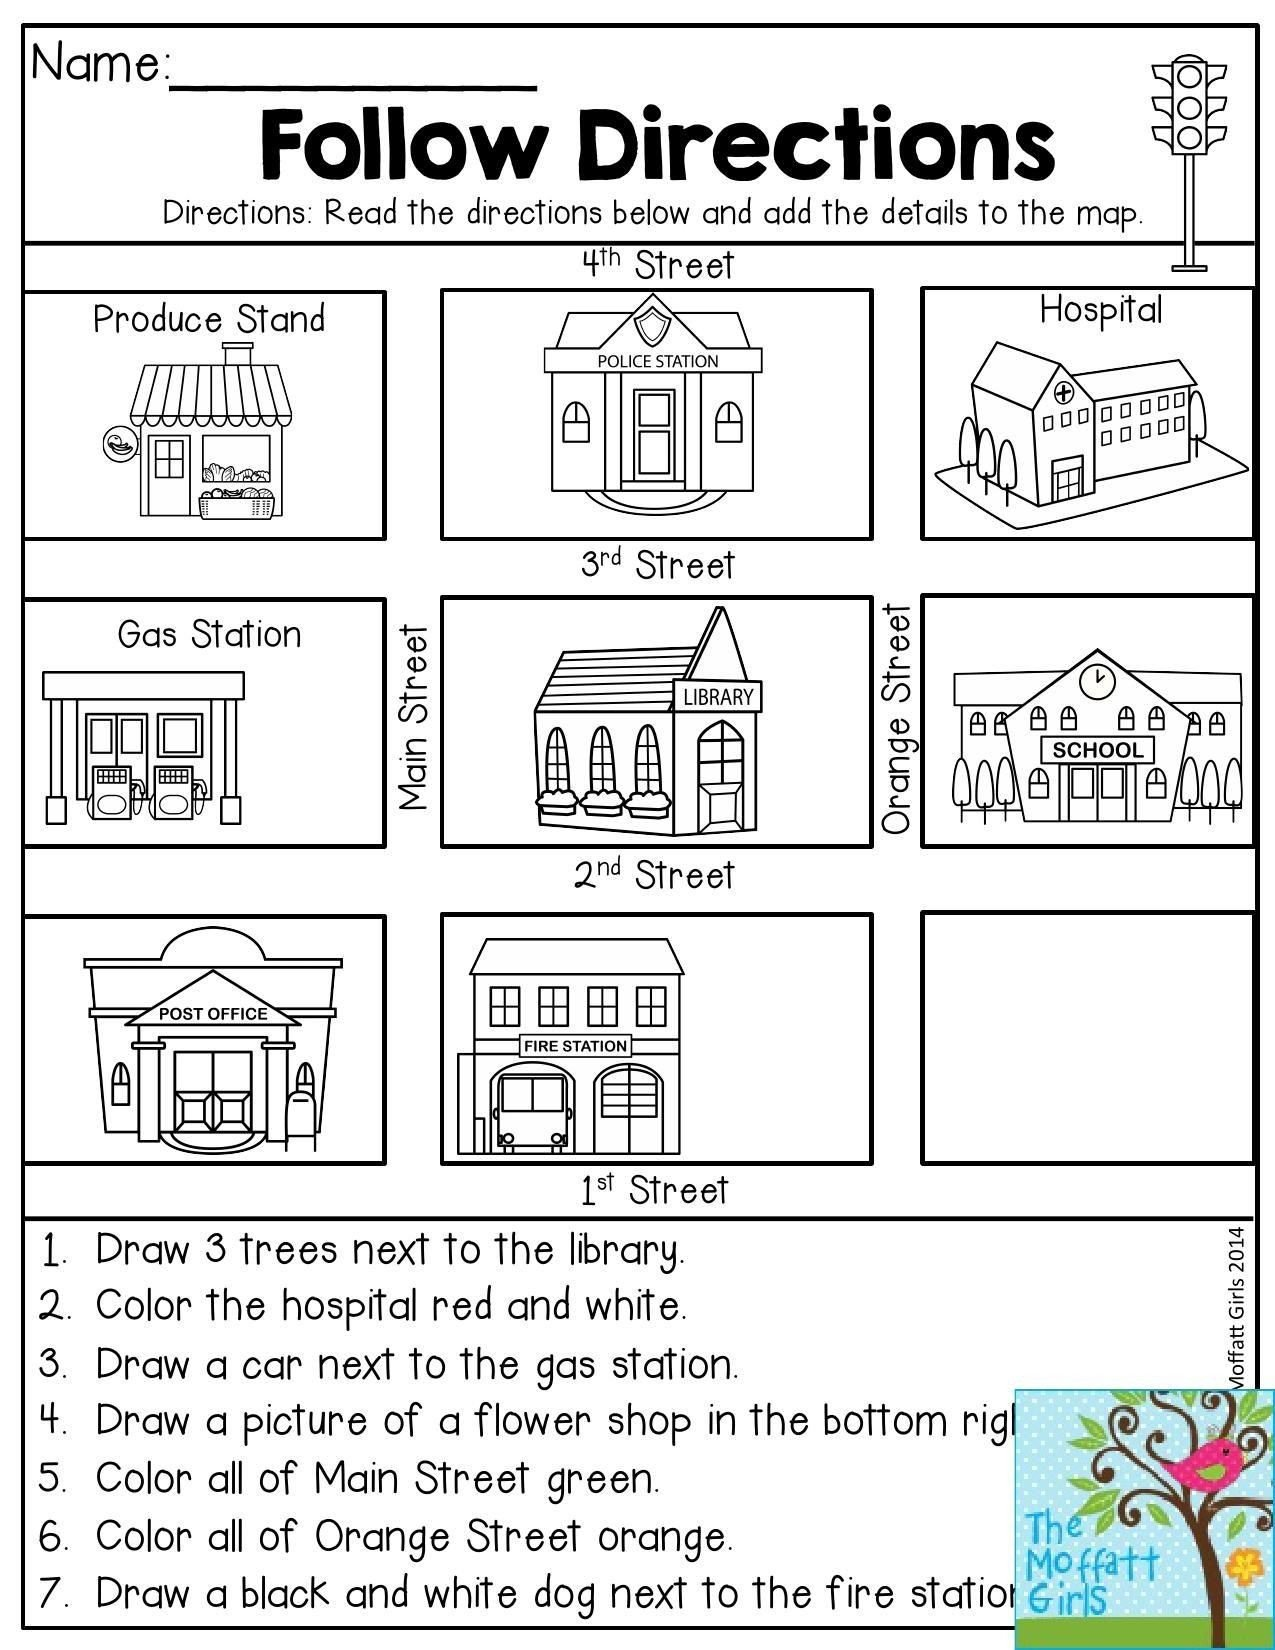 Social Studies Worksheet 1st Grade Free 1st Grade Vocabulary Worksheets